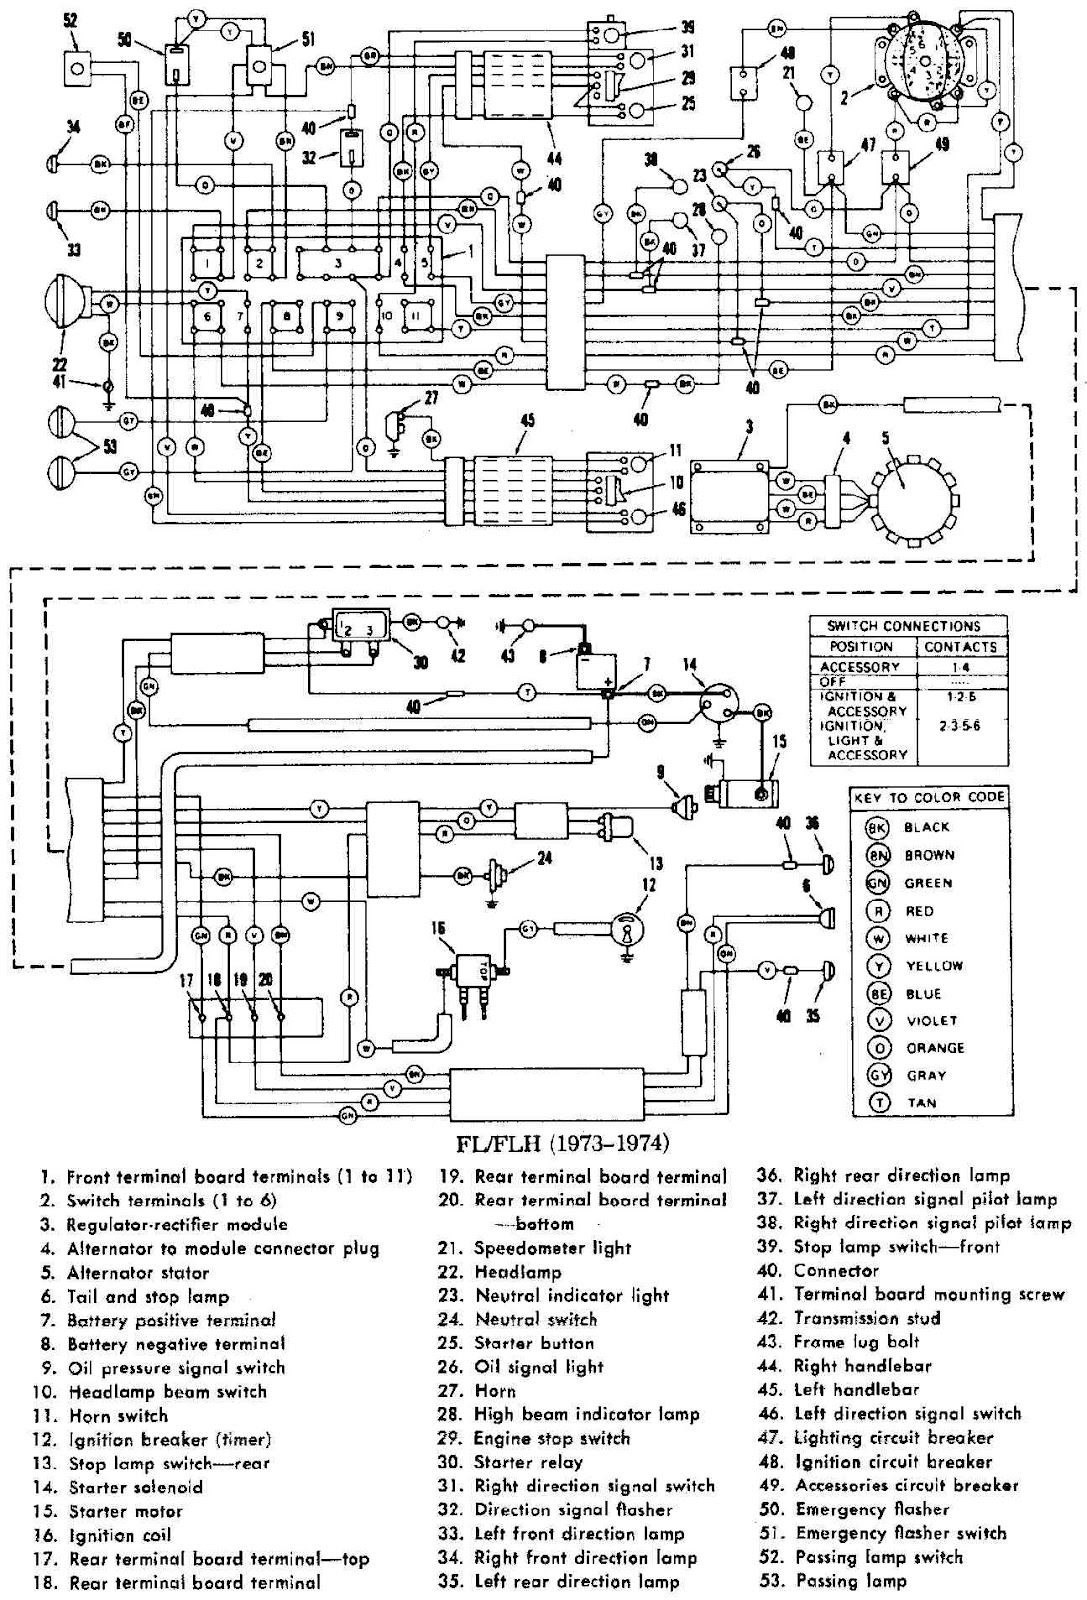 79 shovelhead wiring diagram visual paradigm uml v twin forum harley davidson forums